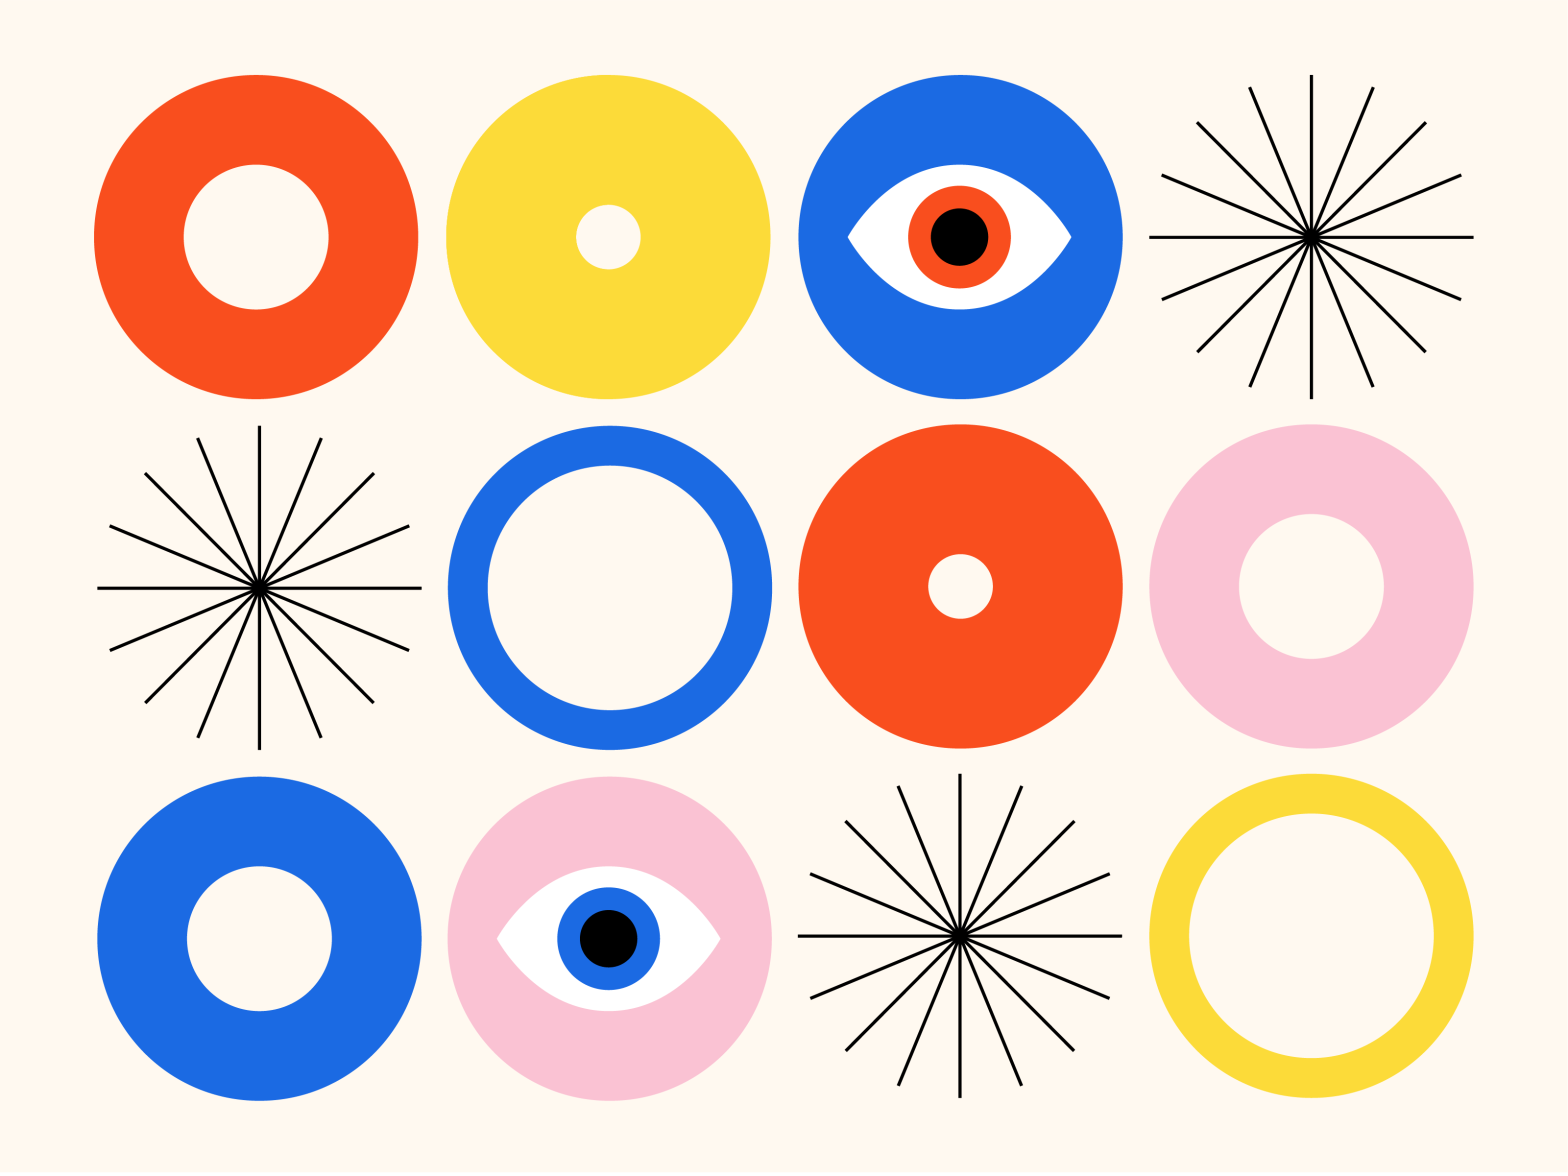 5 Ways To Develop Your Eye For Design